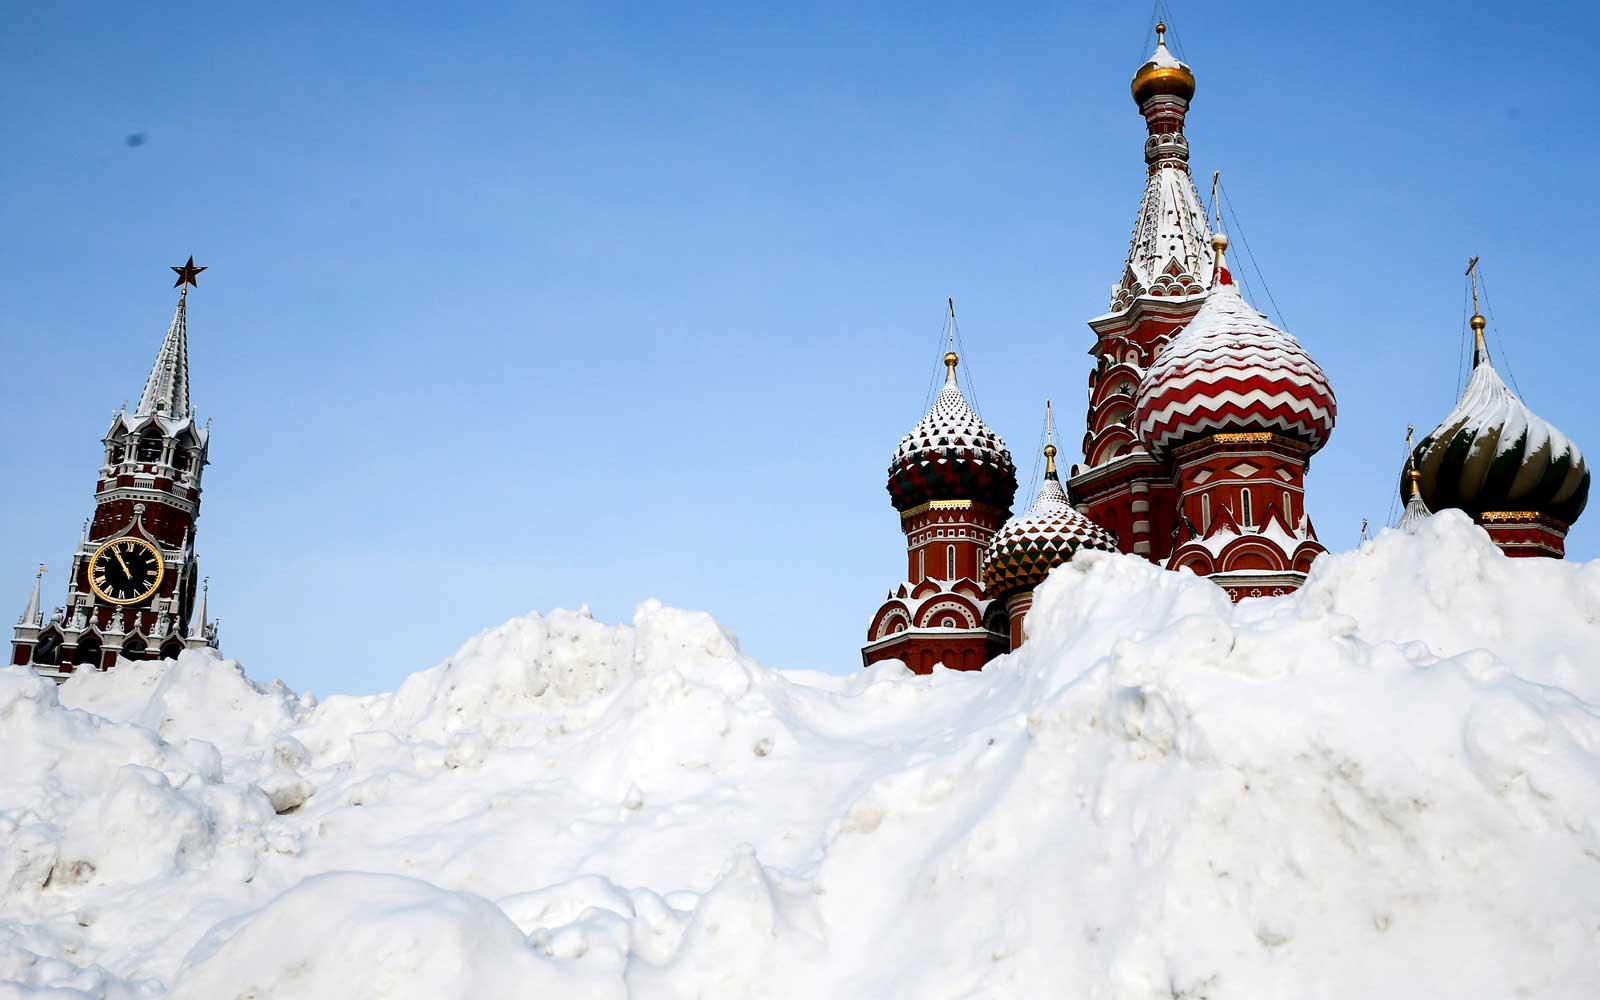 The snow hills are seen on the Vasilyevsky Spusk as Saint Basil's Cathedral and Spasskaya Tower are seen in the background following four days of snowfall in Moscow, Russia on February 06, 2018.